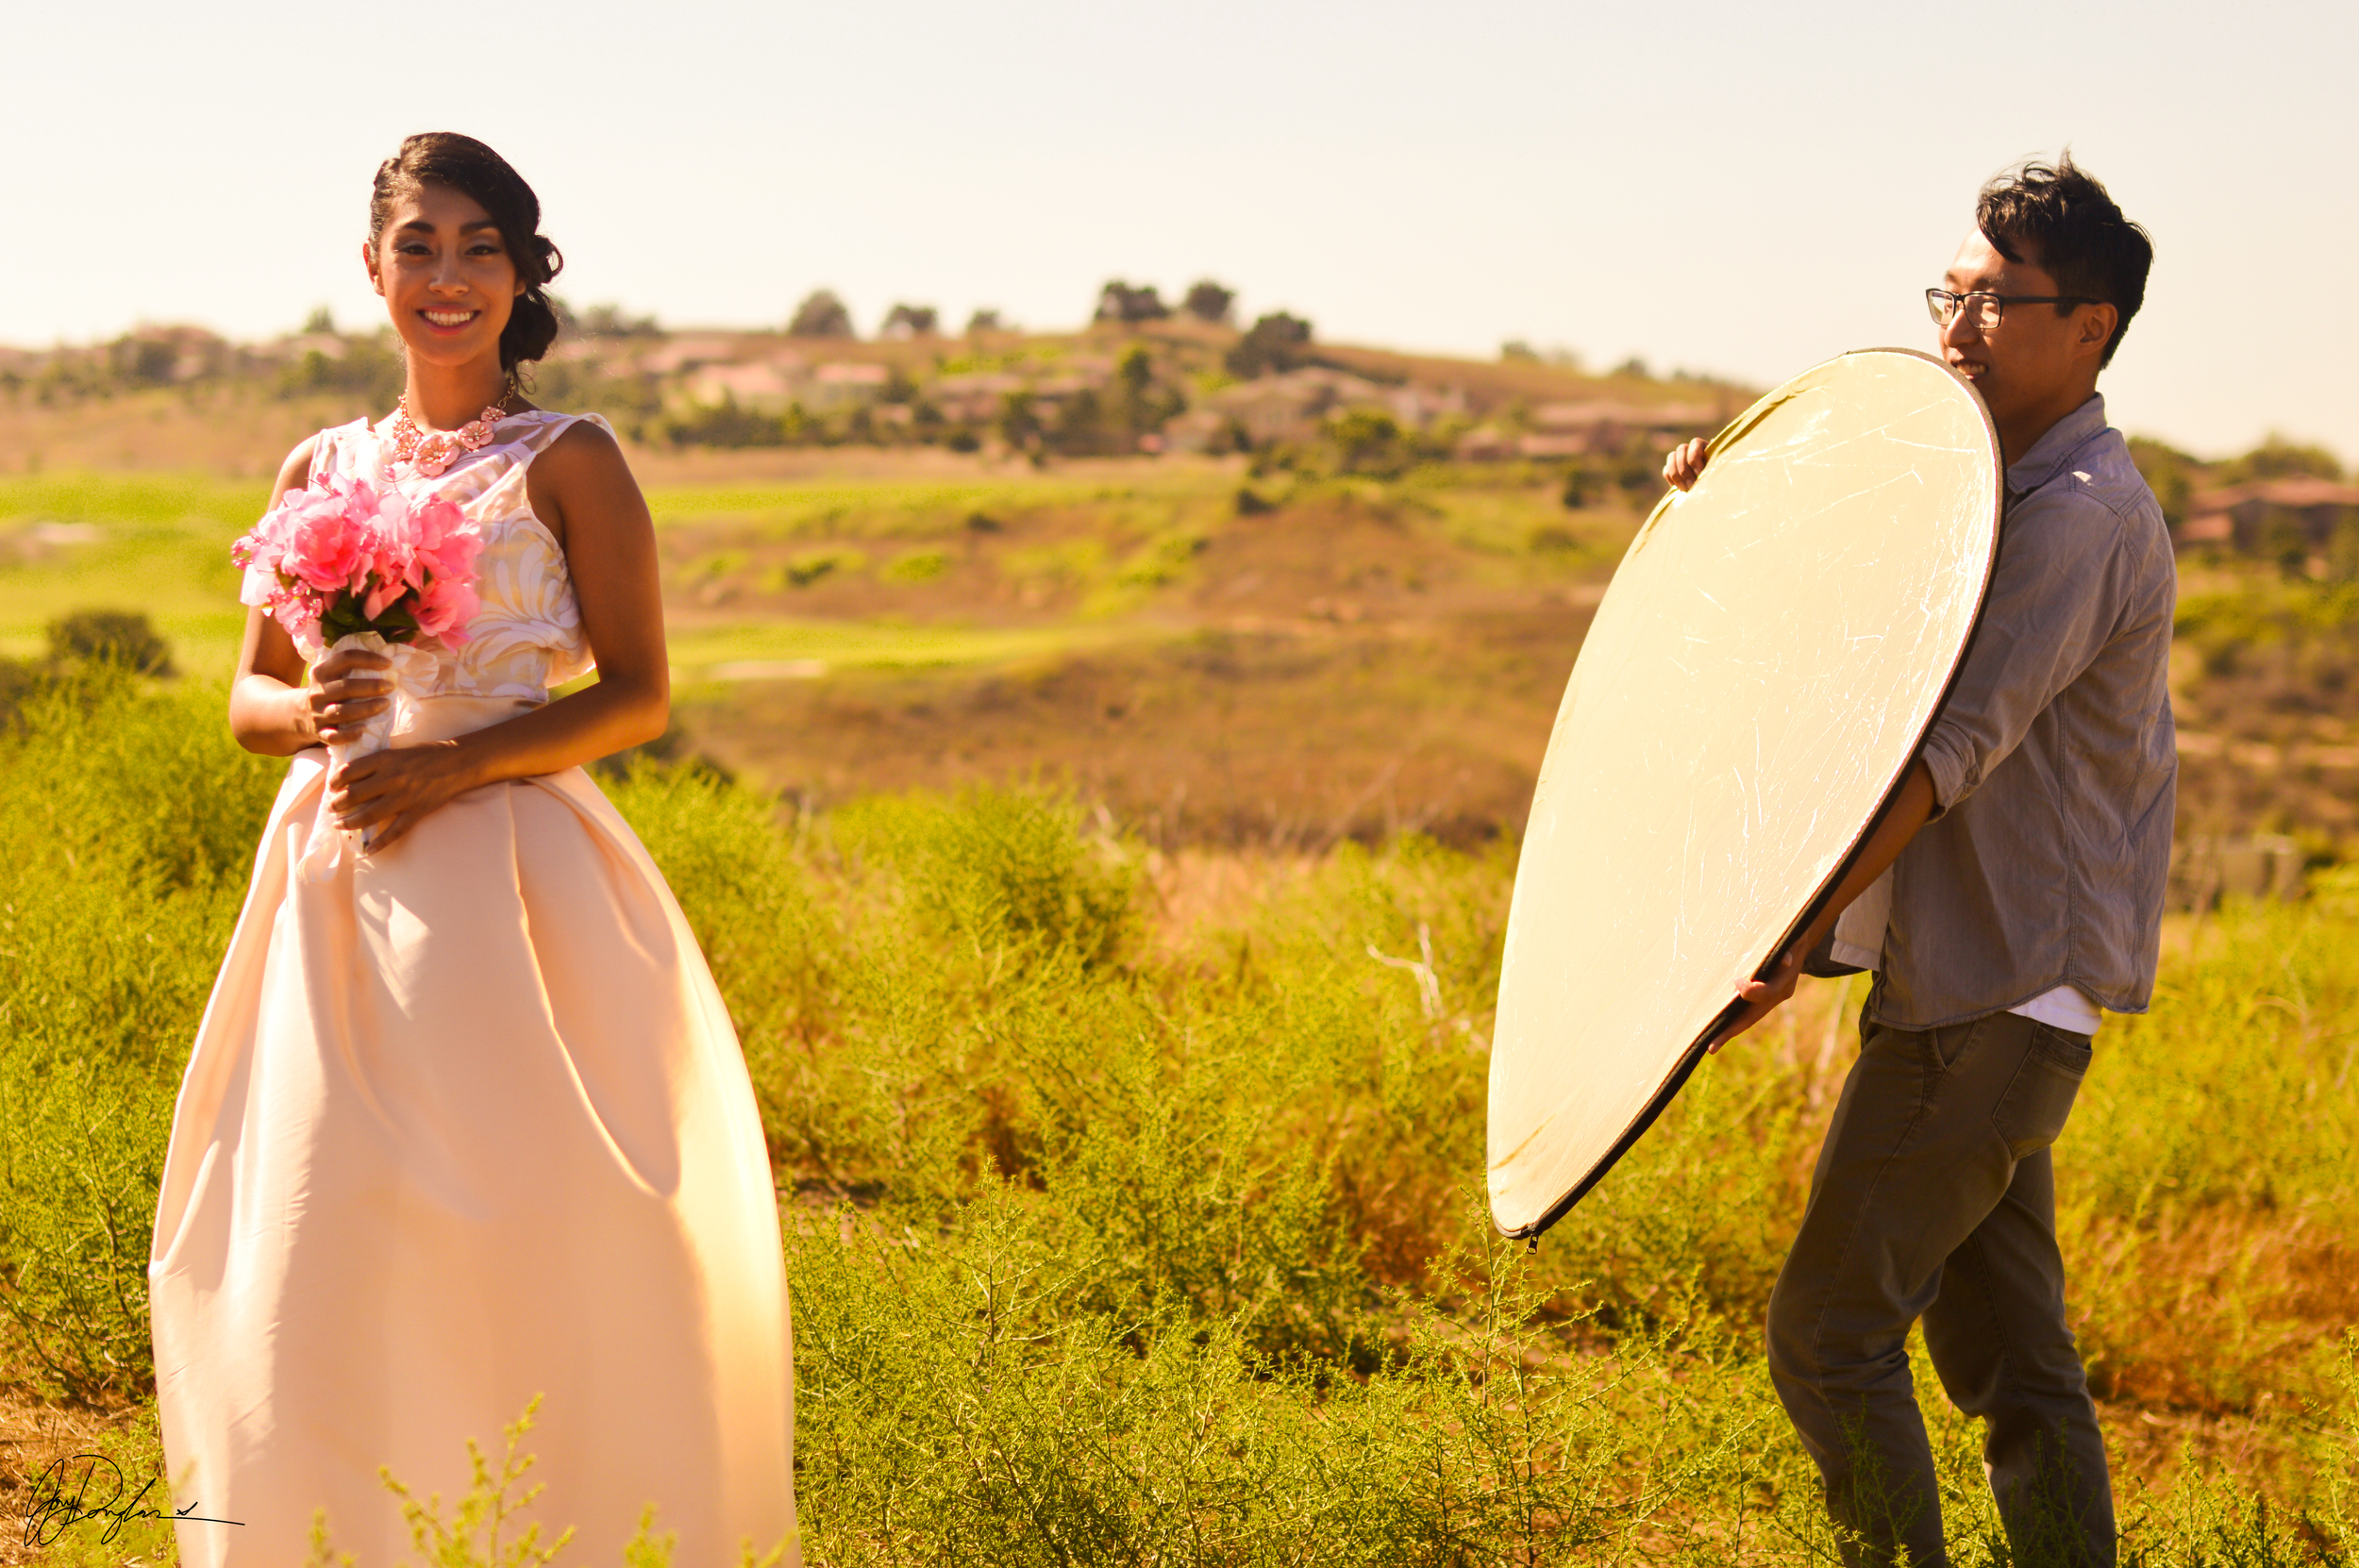 Model Yolanda Panuco and lighting assistant Darren Dai during an afternoon fashion wedding shoot. Chino Hills, California